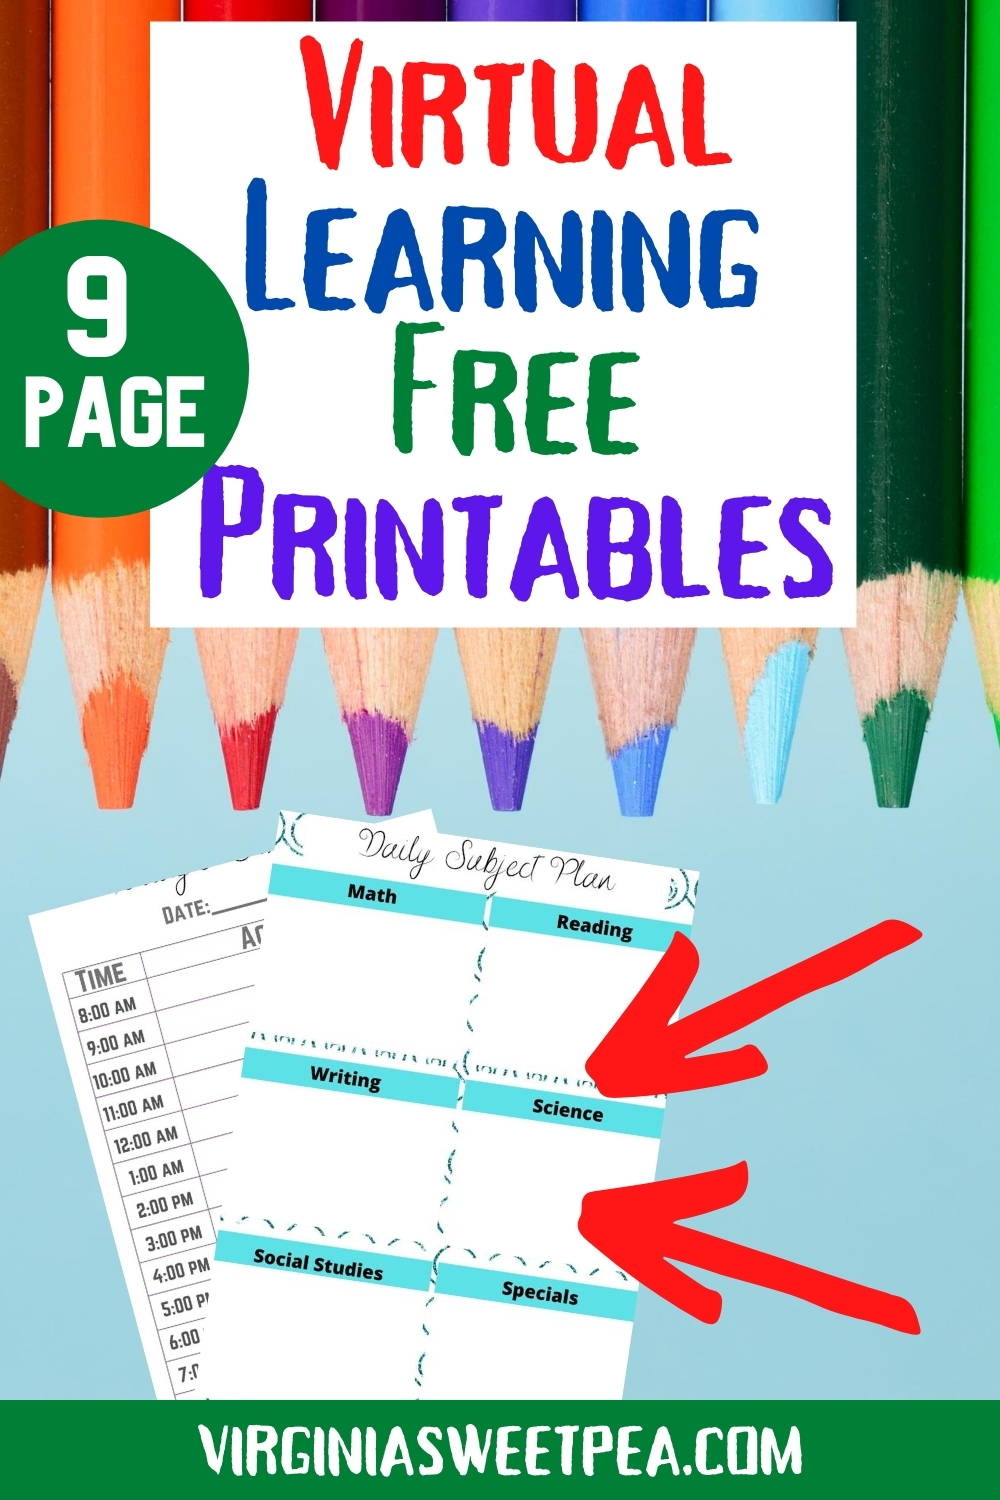 Virtual Learning Free Printables - Use these free printables to help your child have virtual learning success. #virtuallearning #freeprintablesvirtuallearning via @spaula